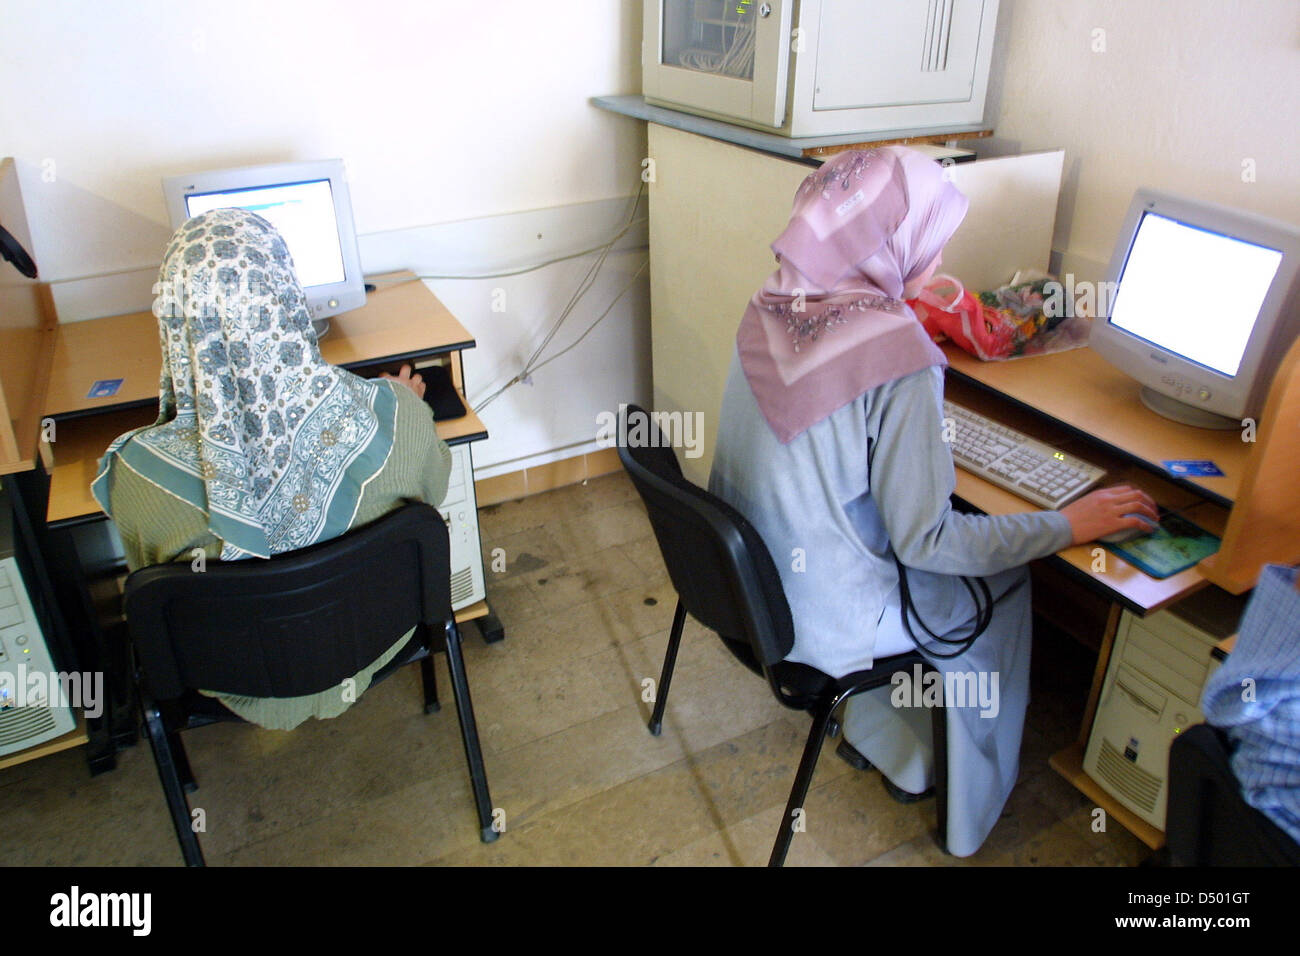 NOVI PAZAR, SERBIA, 29 APRIL 2002 ---- A traditionally dressed Moslem woman surfs the internet at an internet cafe Stock Photo